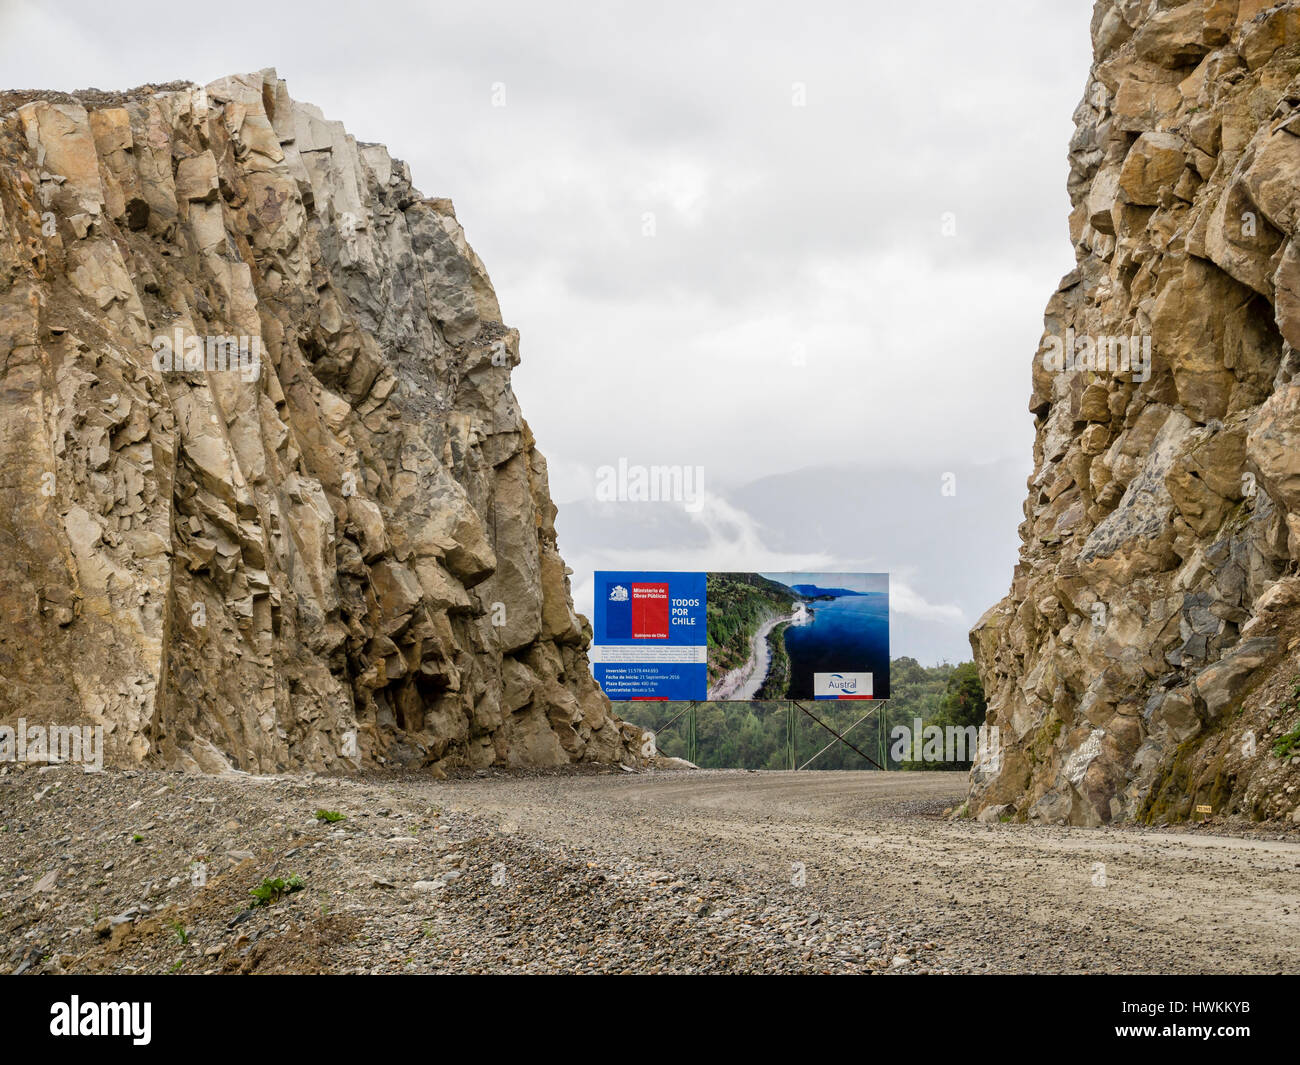 Construction work, road Carretera Austral south of Puyuhuapi, Patagonia, Chile - Stock Image